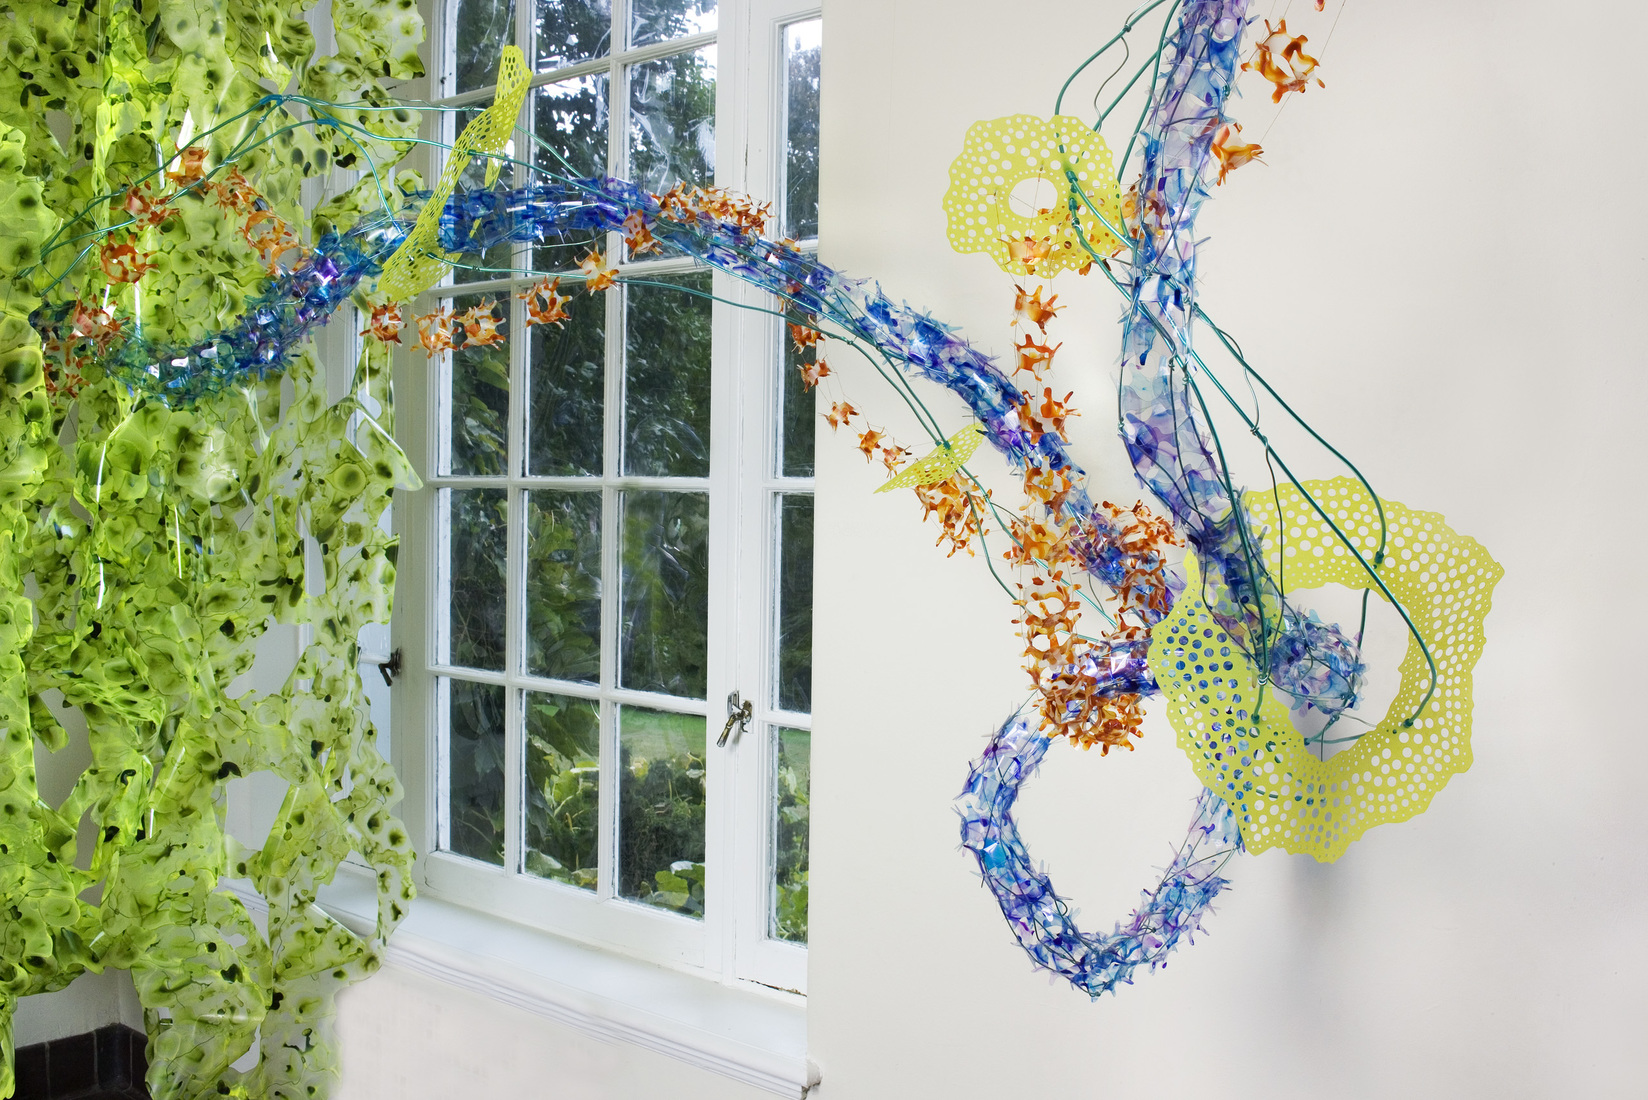 Synthesis Synthesis at Wave Hill, Glyndor Gallery, Sunroom Project Space